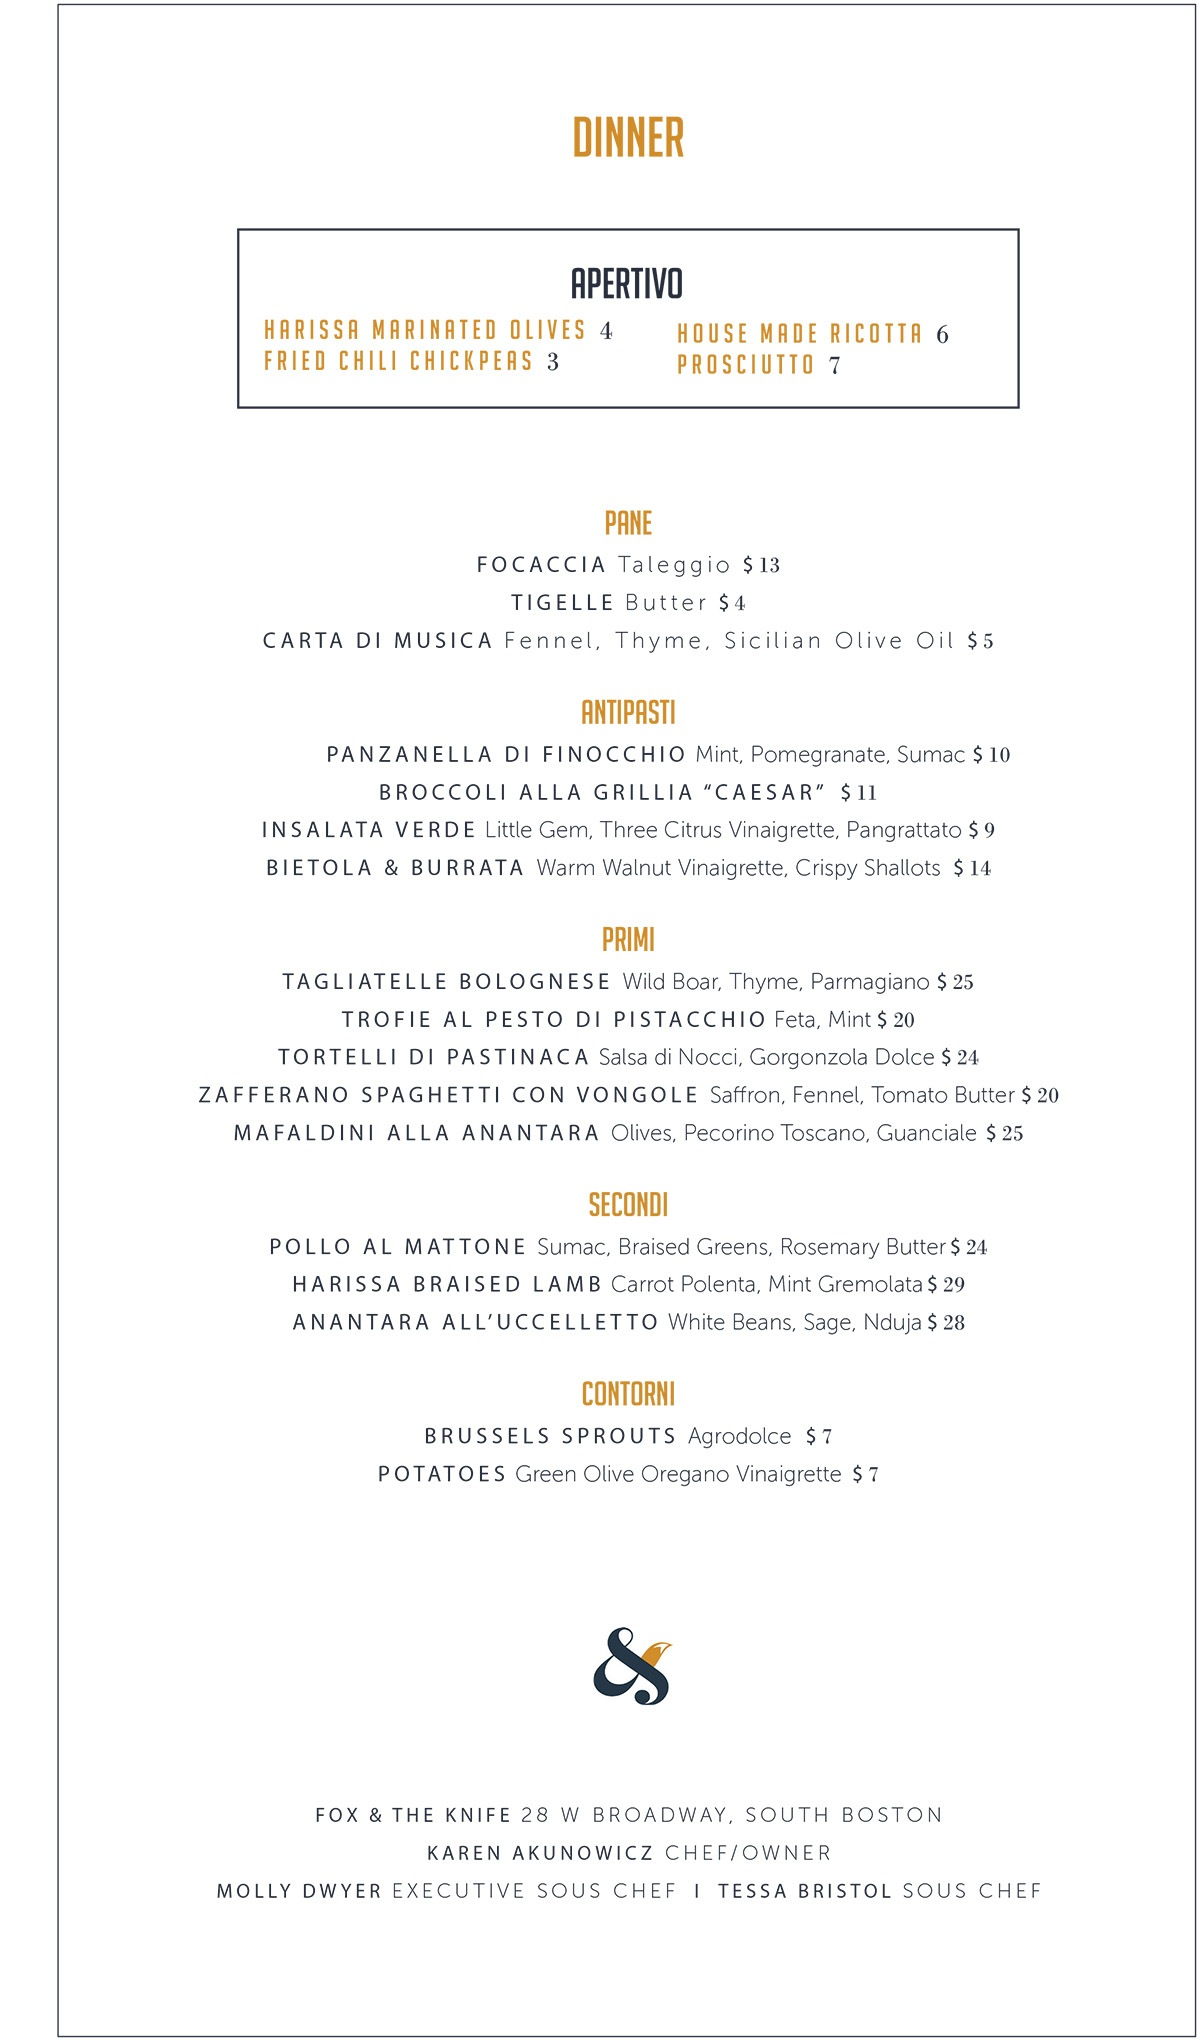 Fox & the Knife dinner menu